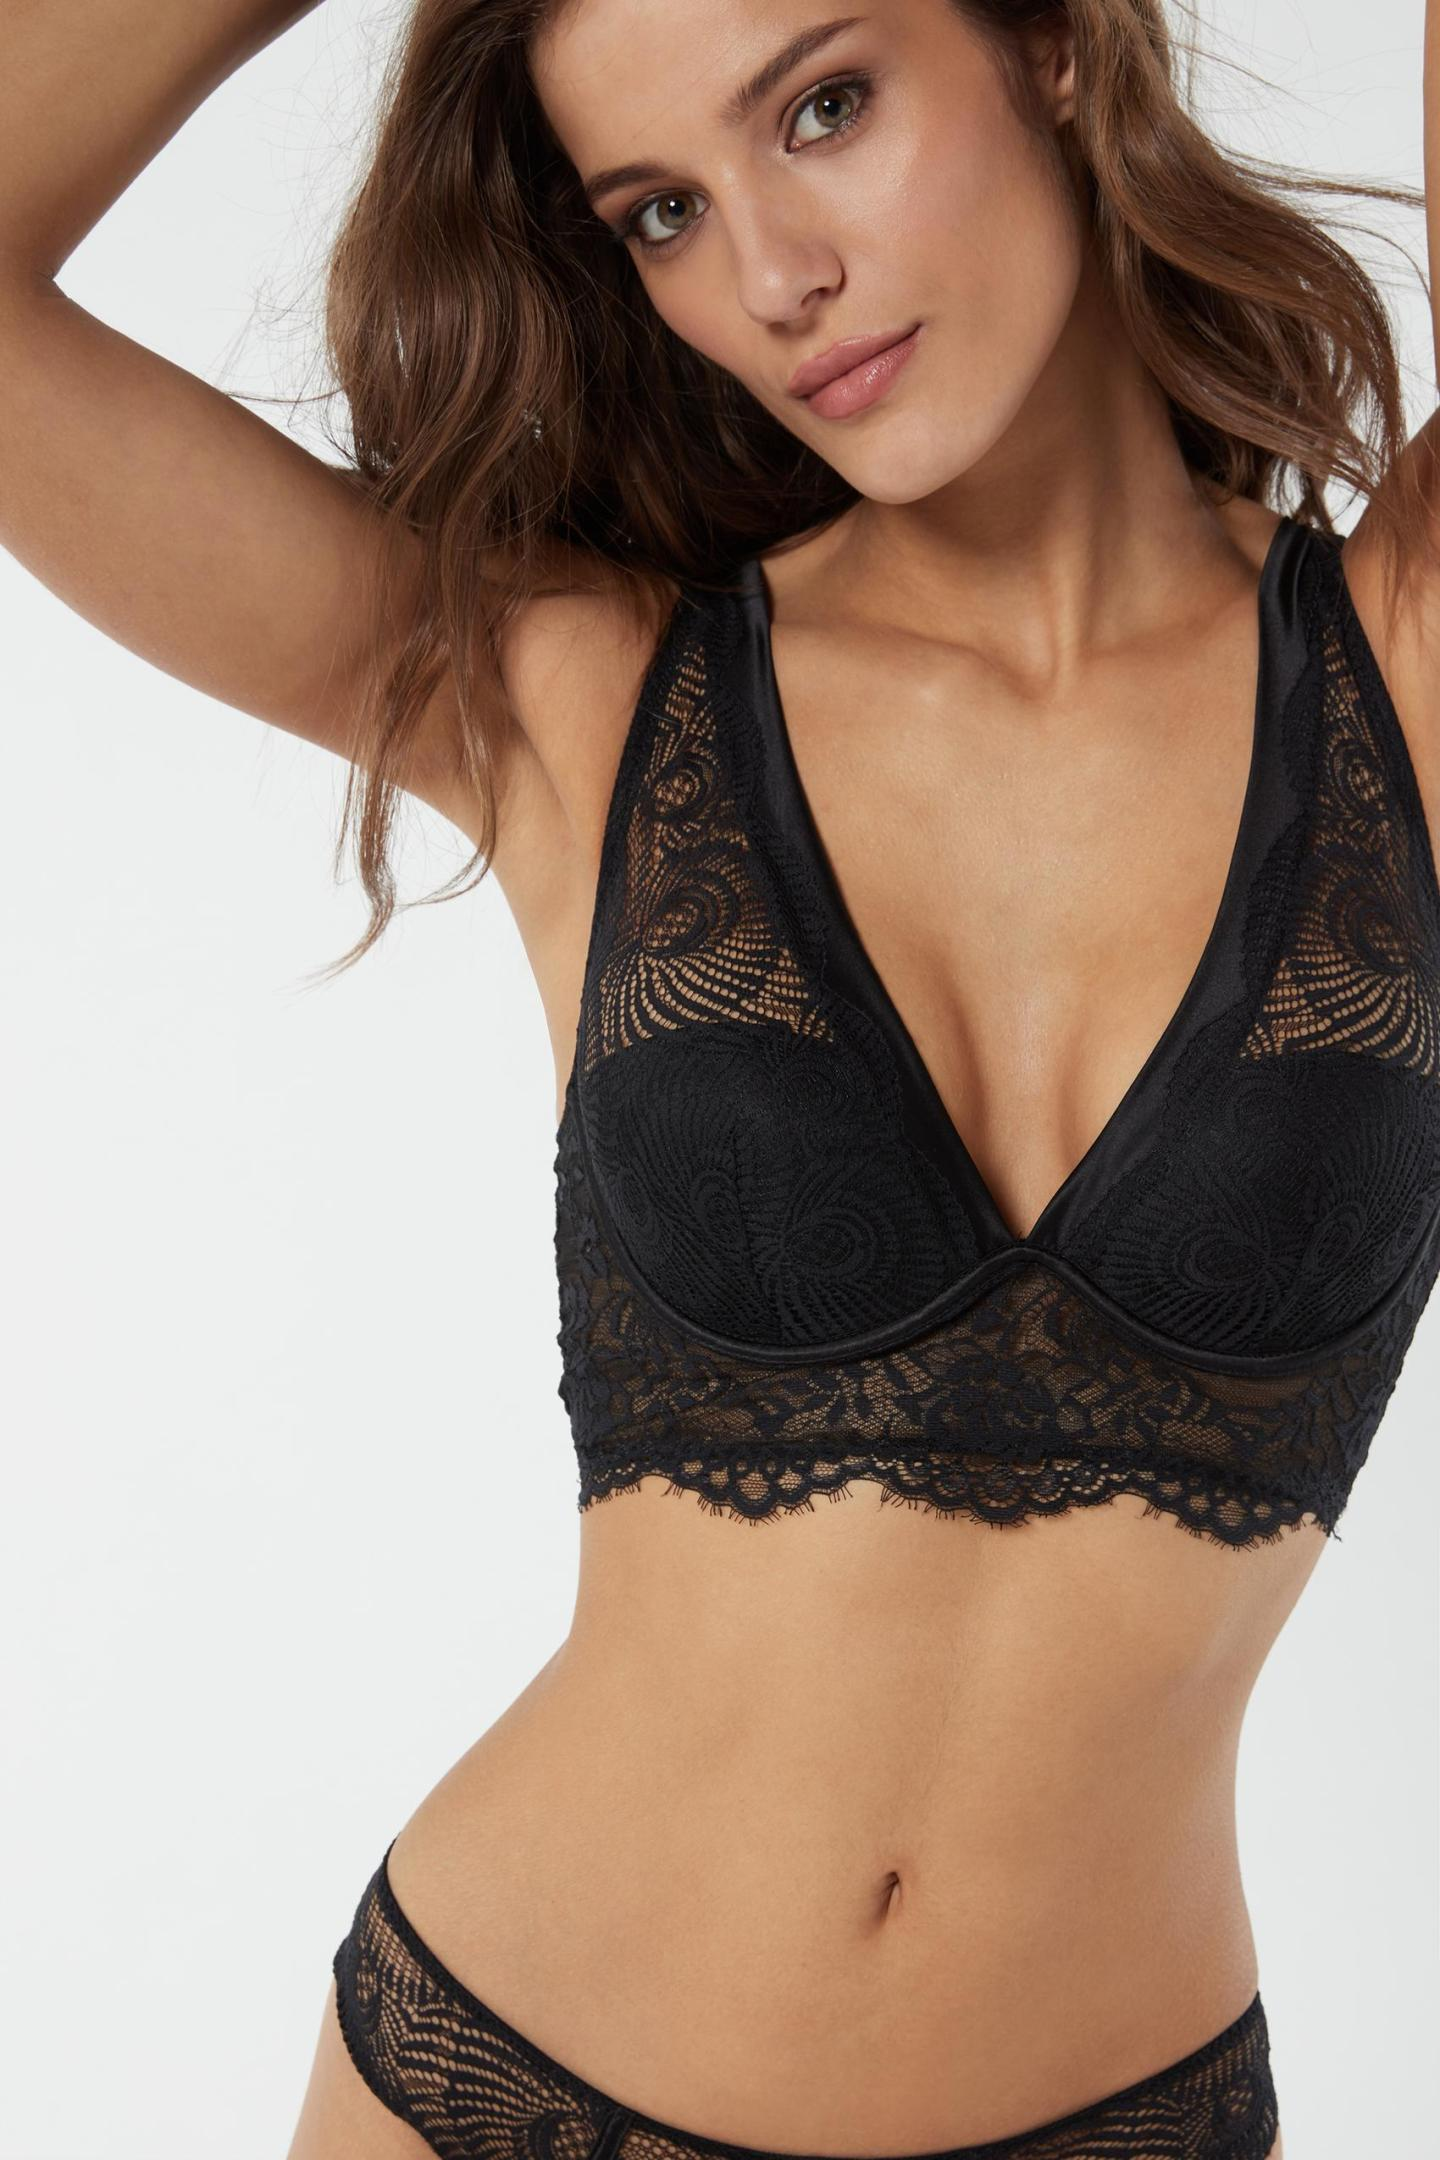 INTIMISSIMI – LINGERIE « GREEN  » DENTELLE NOIR PUSH UP